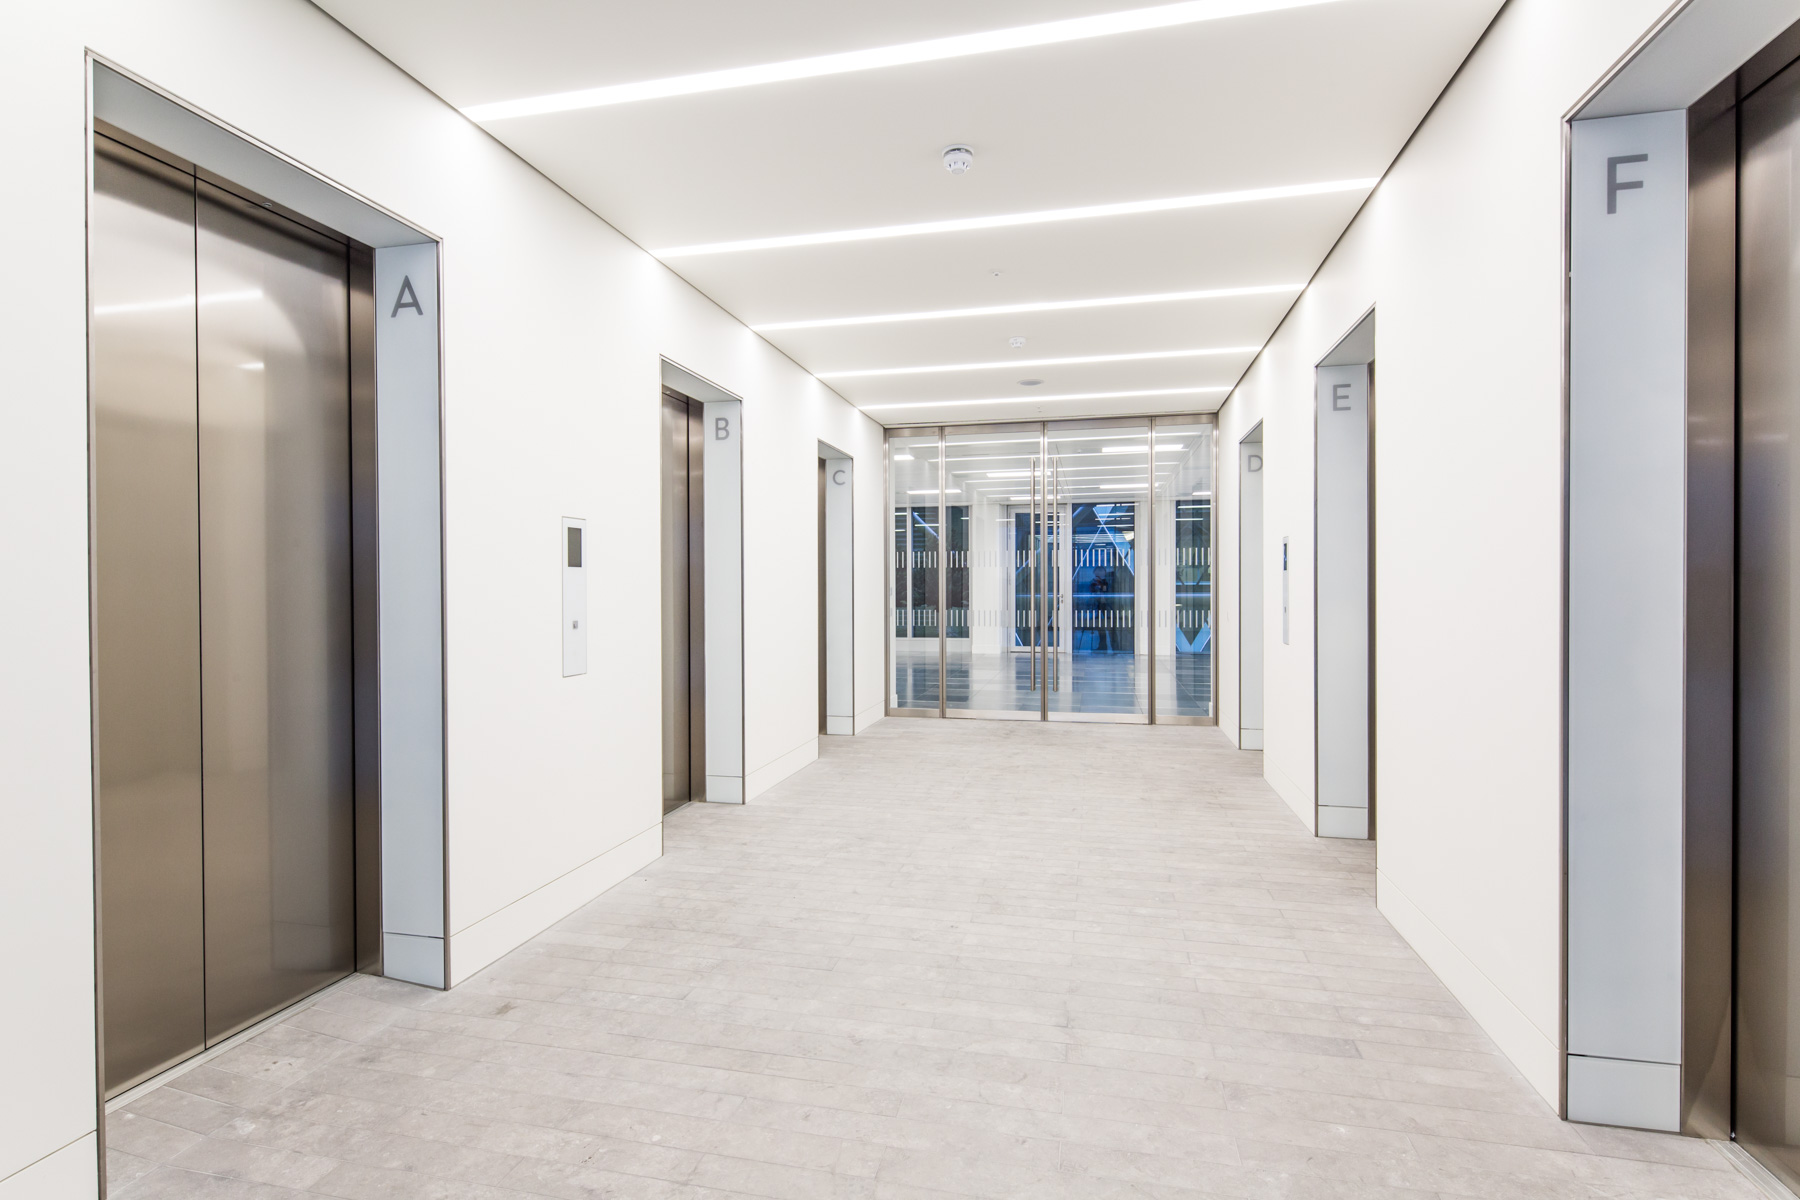 6 Bevis Marks London Architectural Photography